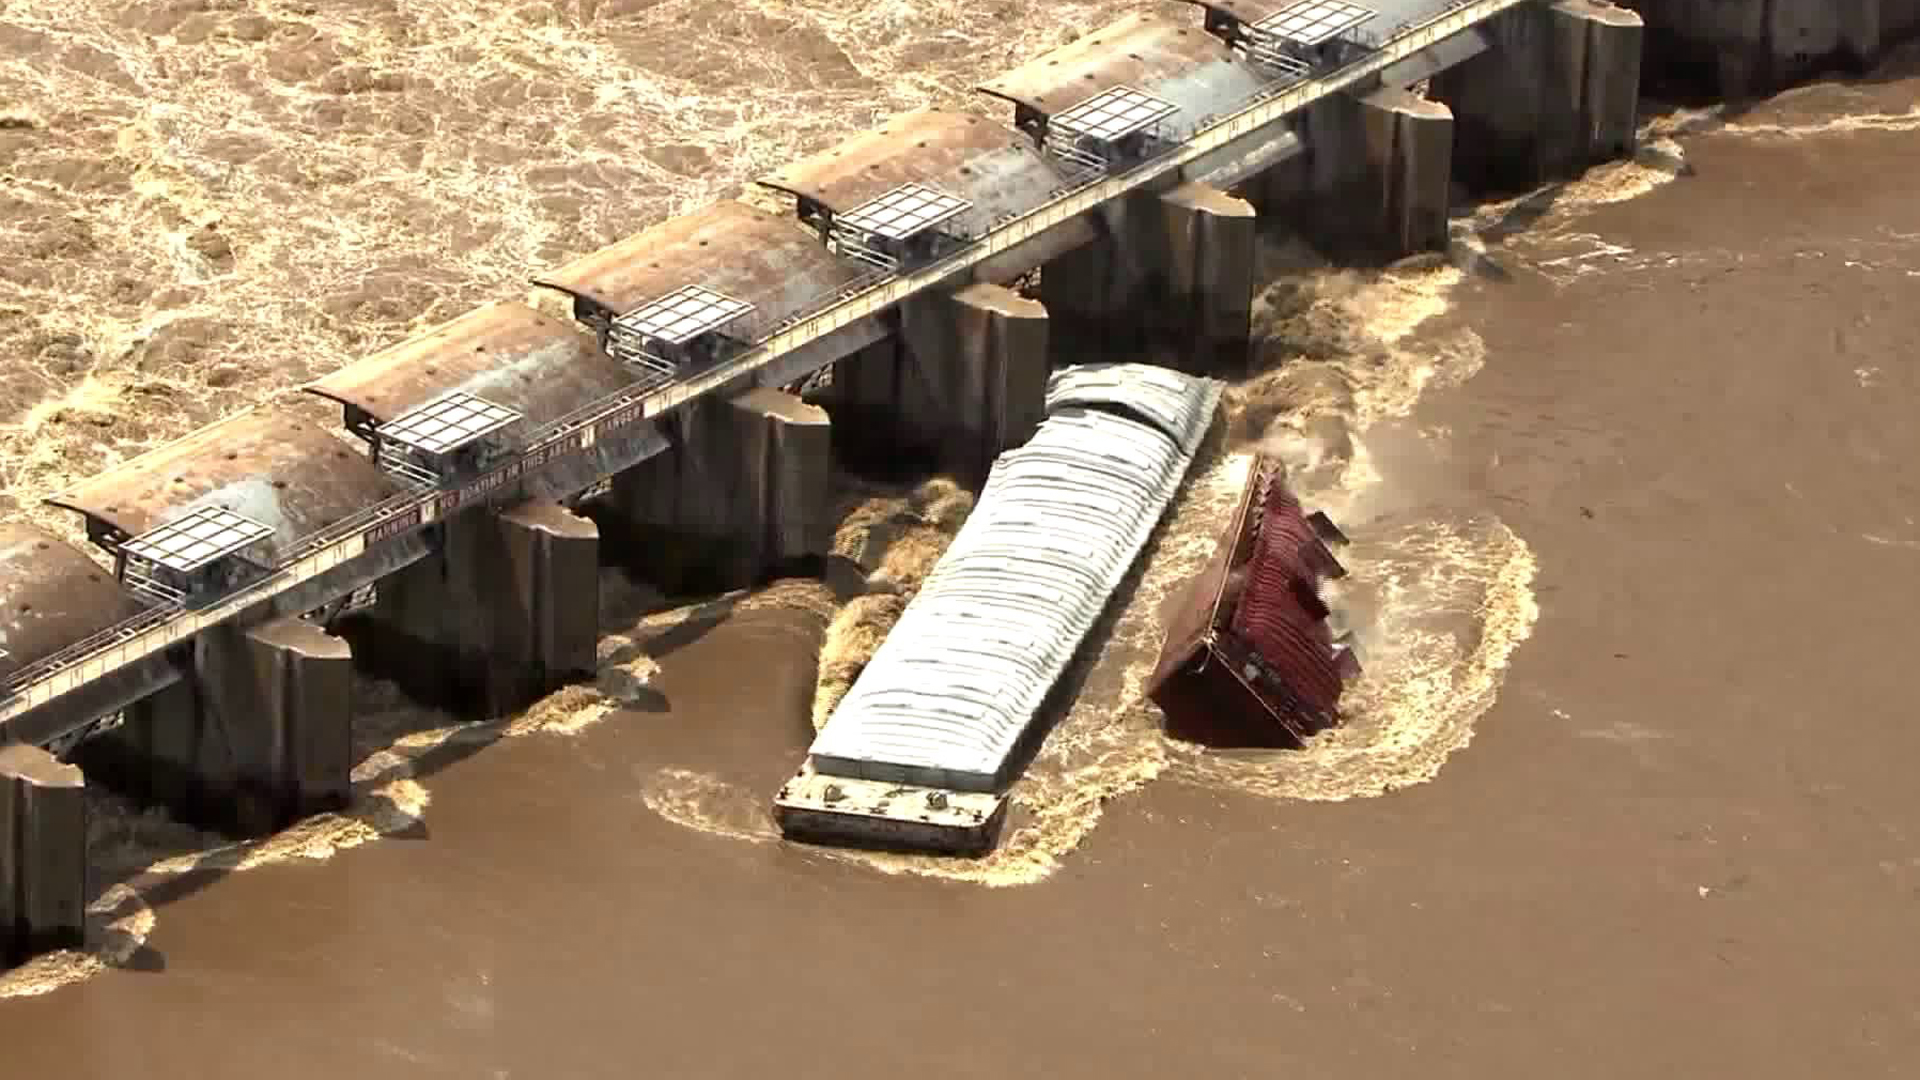 Two barges sank in the Arkansas River after crashing into the Webbers Falls Lock & Dam in Oklahoma on May 23, 2019. (Credit: KFOR)